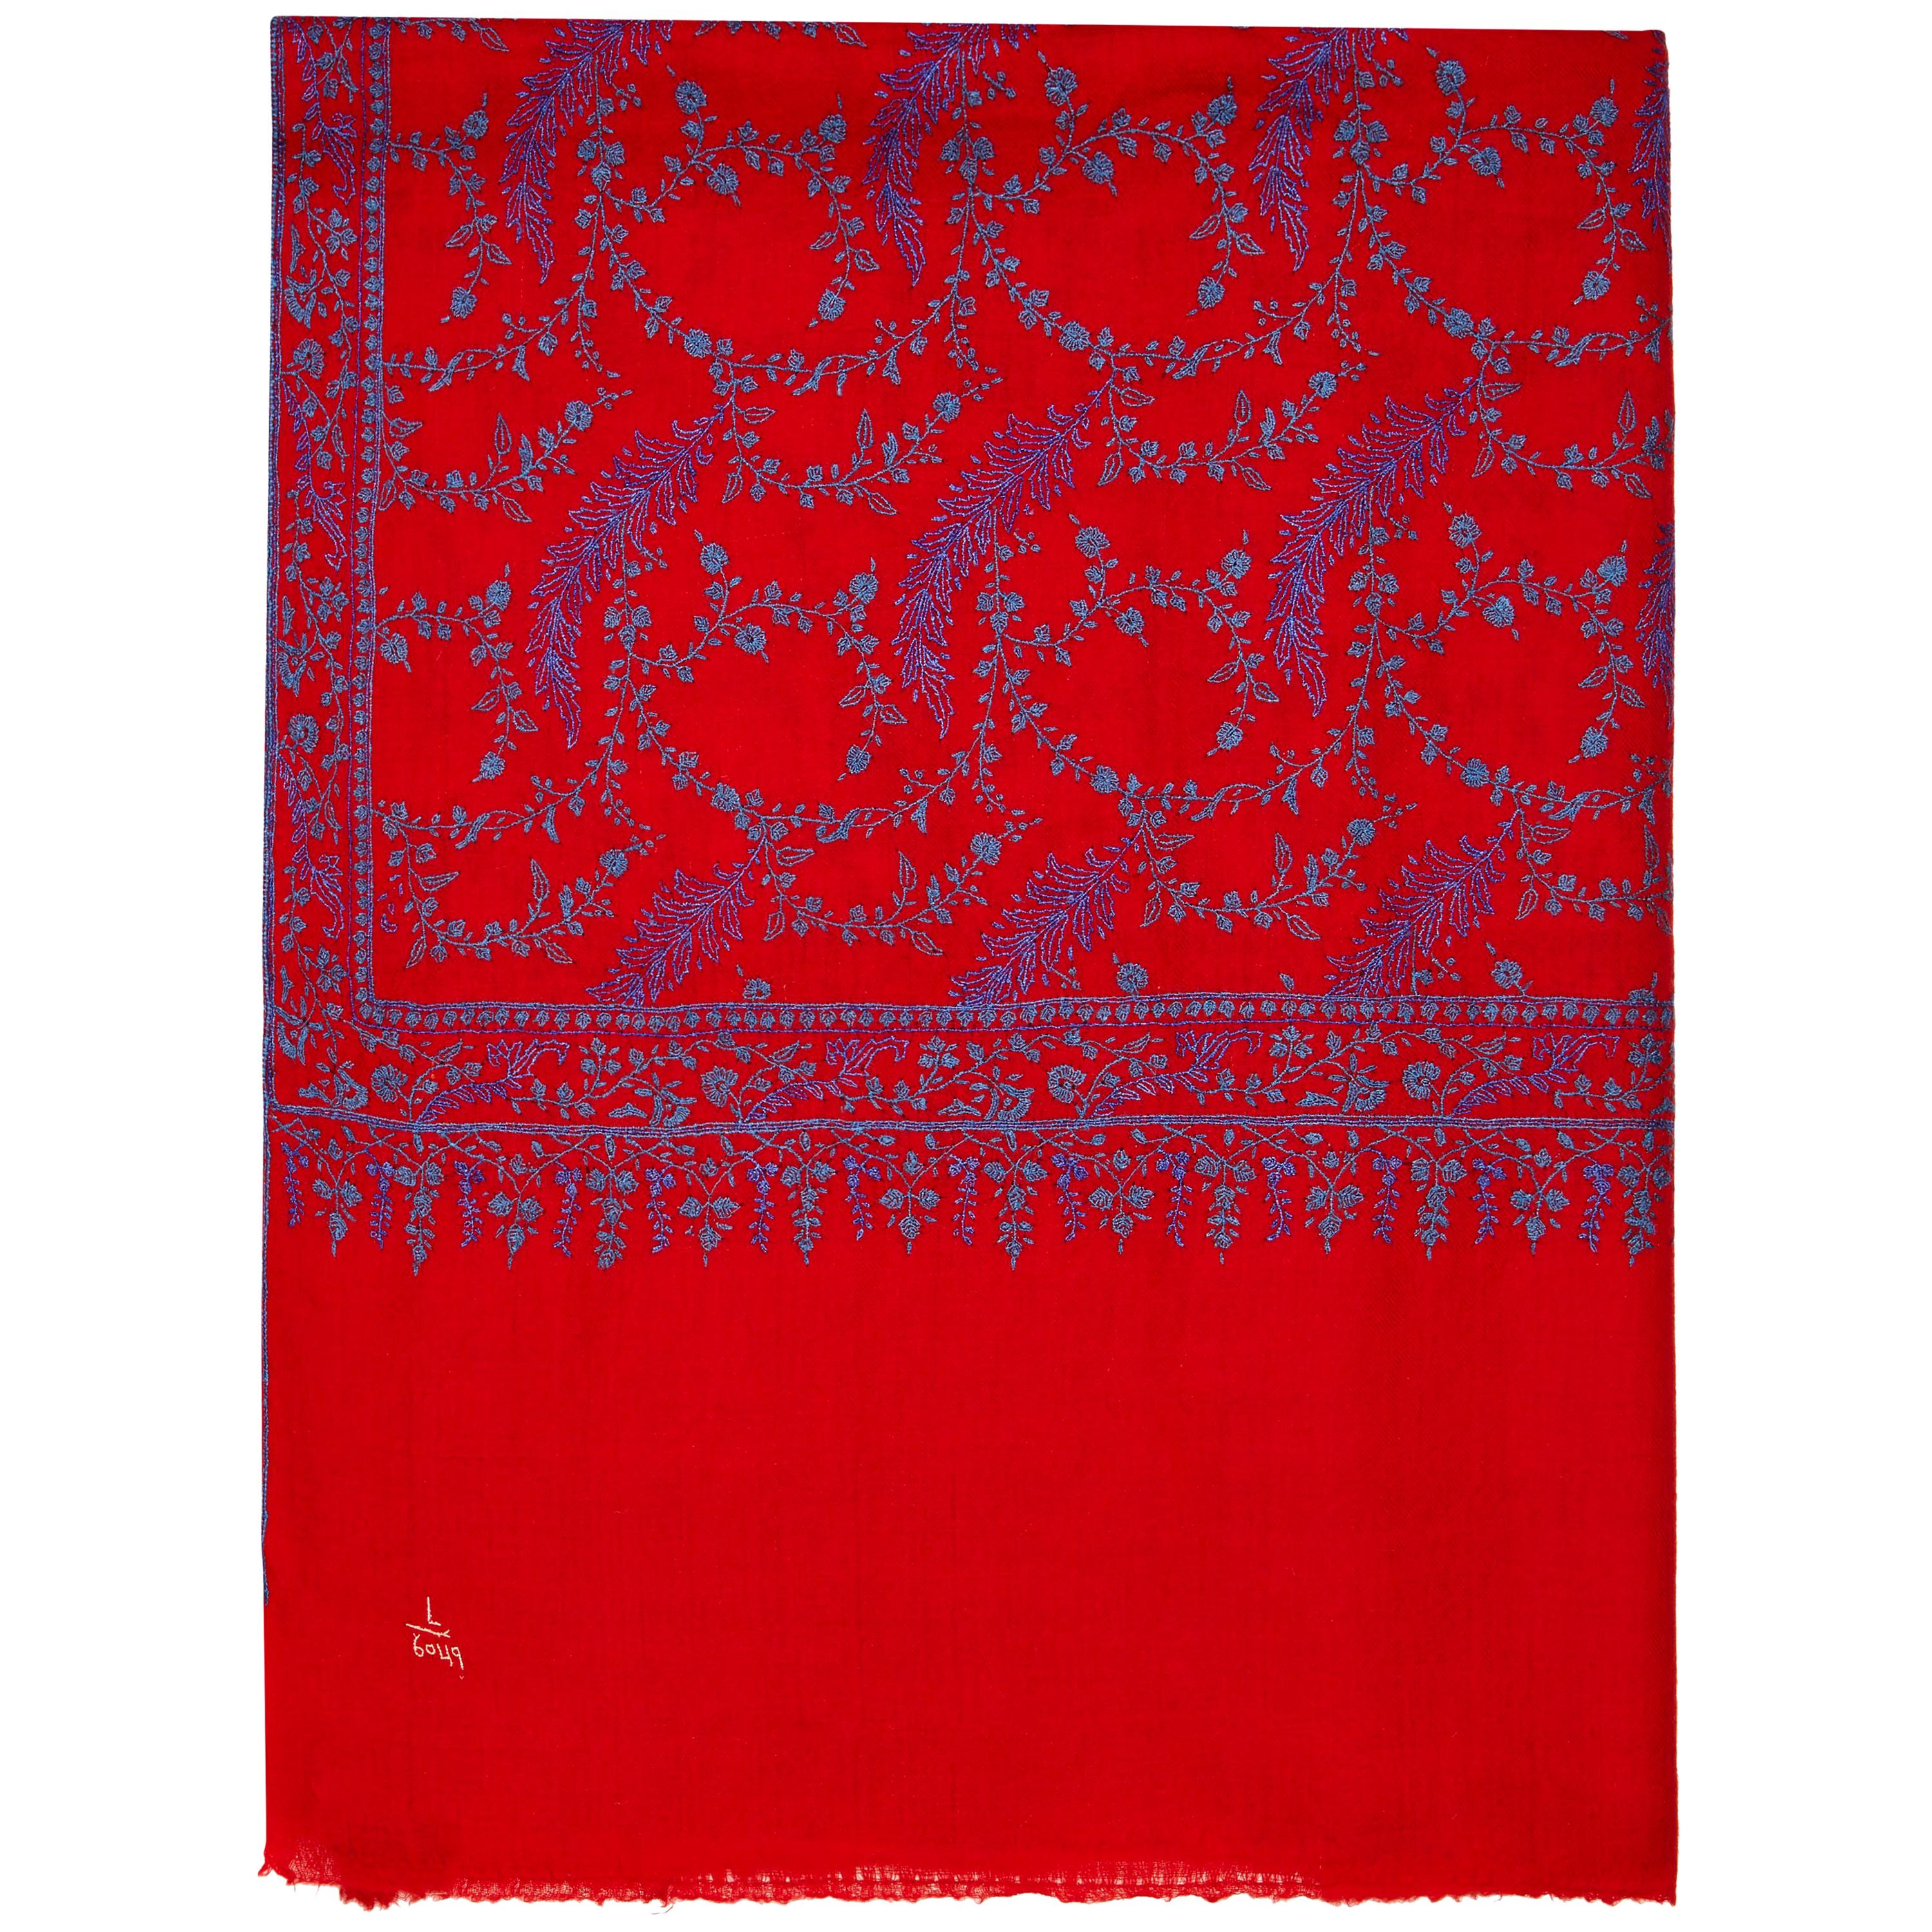 High Quality Hand Embroidered 100% Cashmere Shawl in Red & Blue